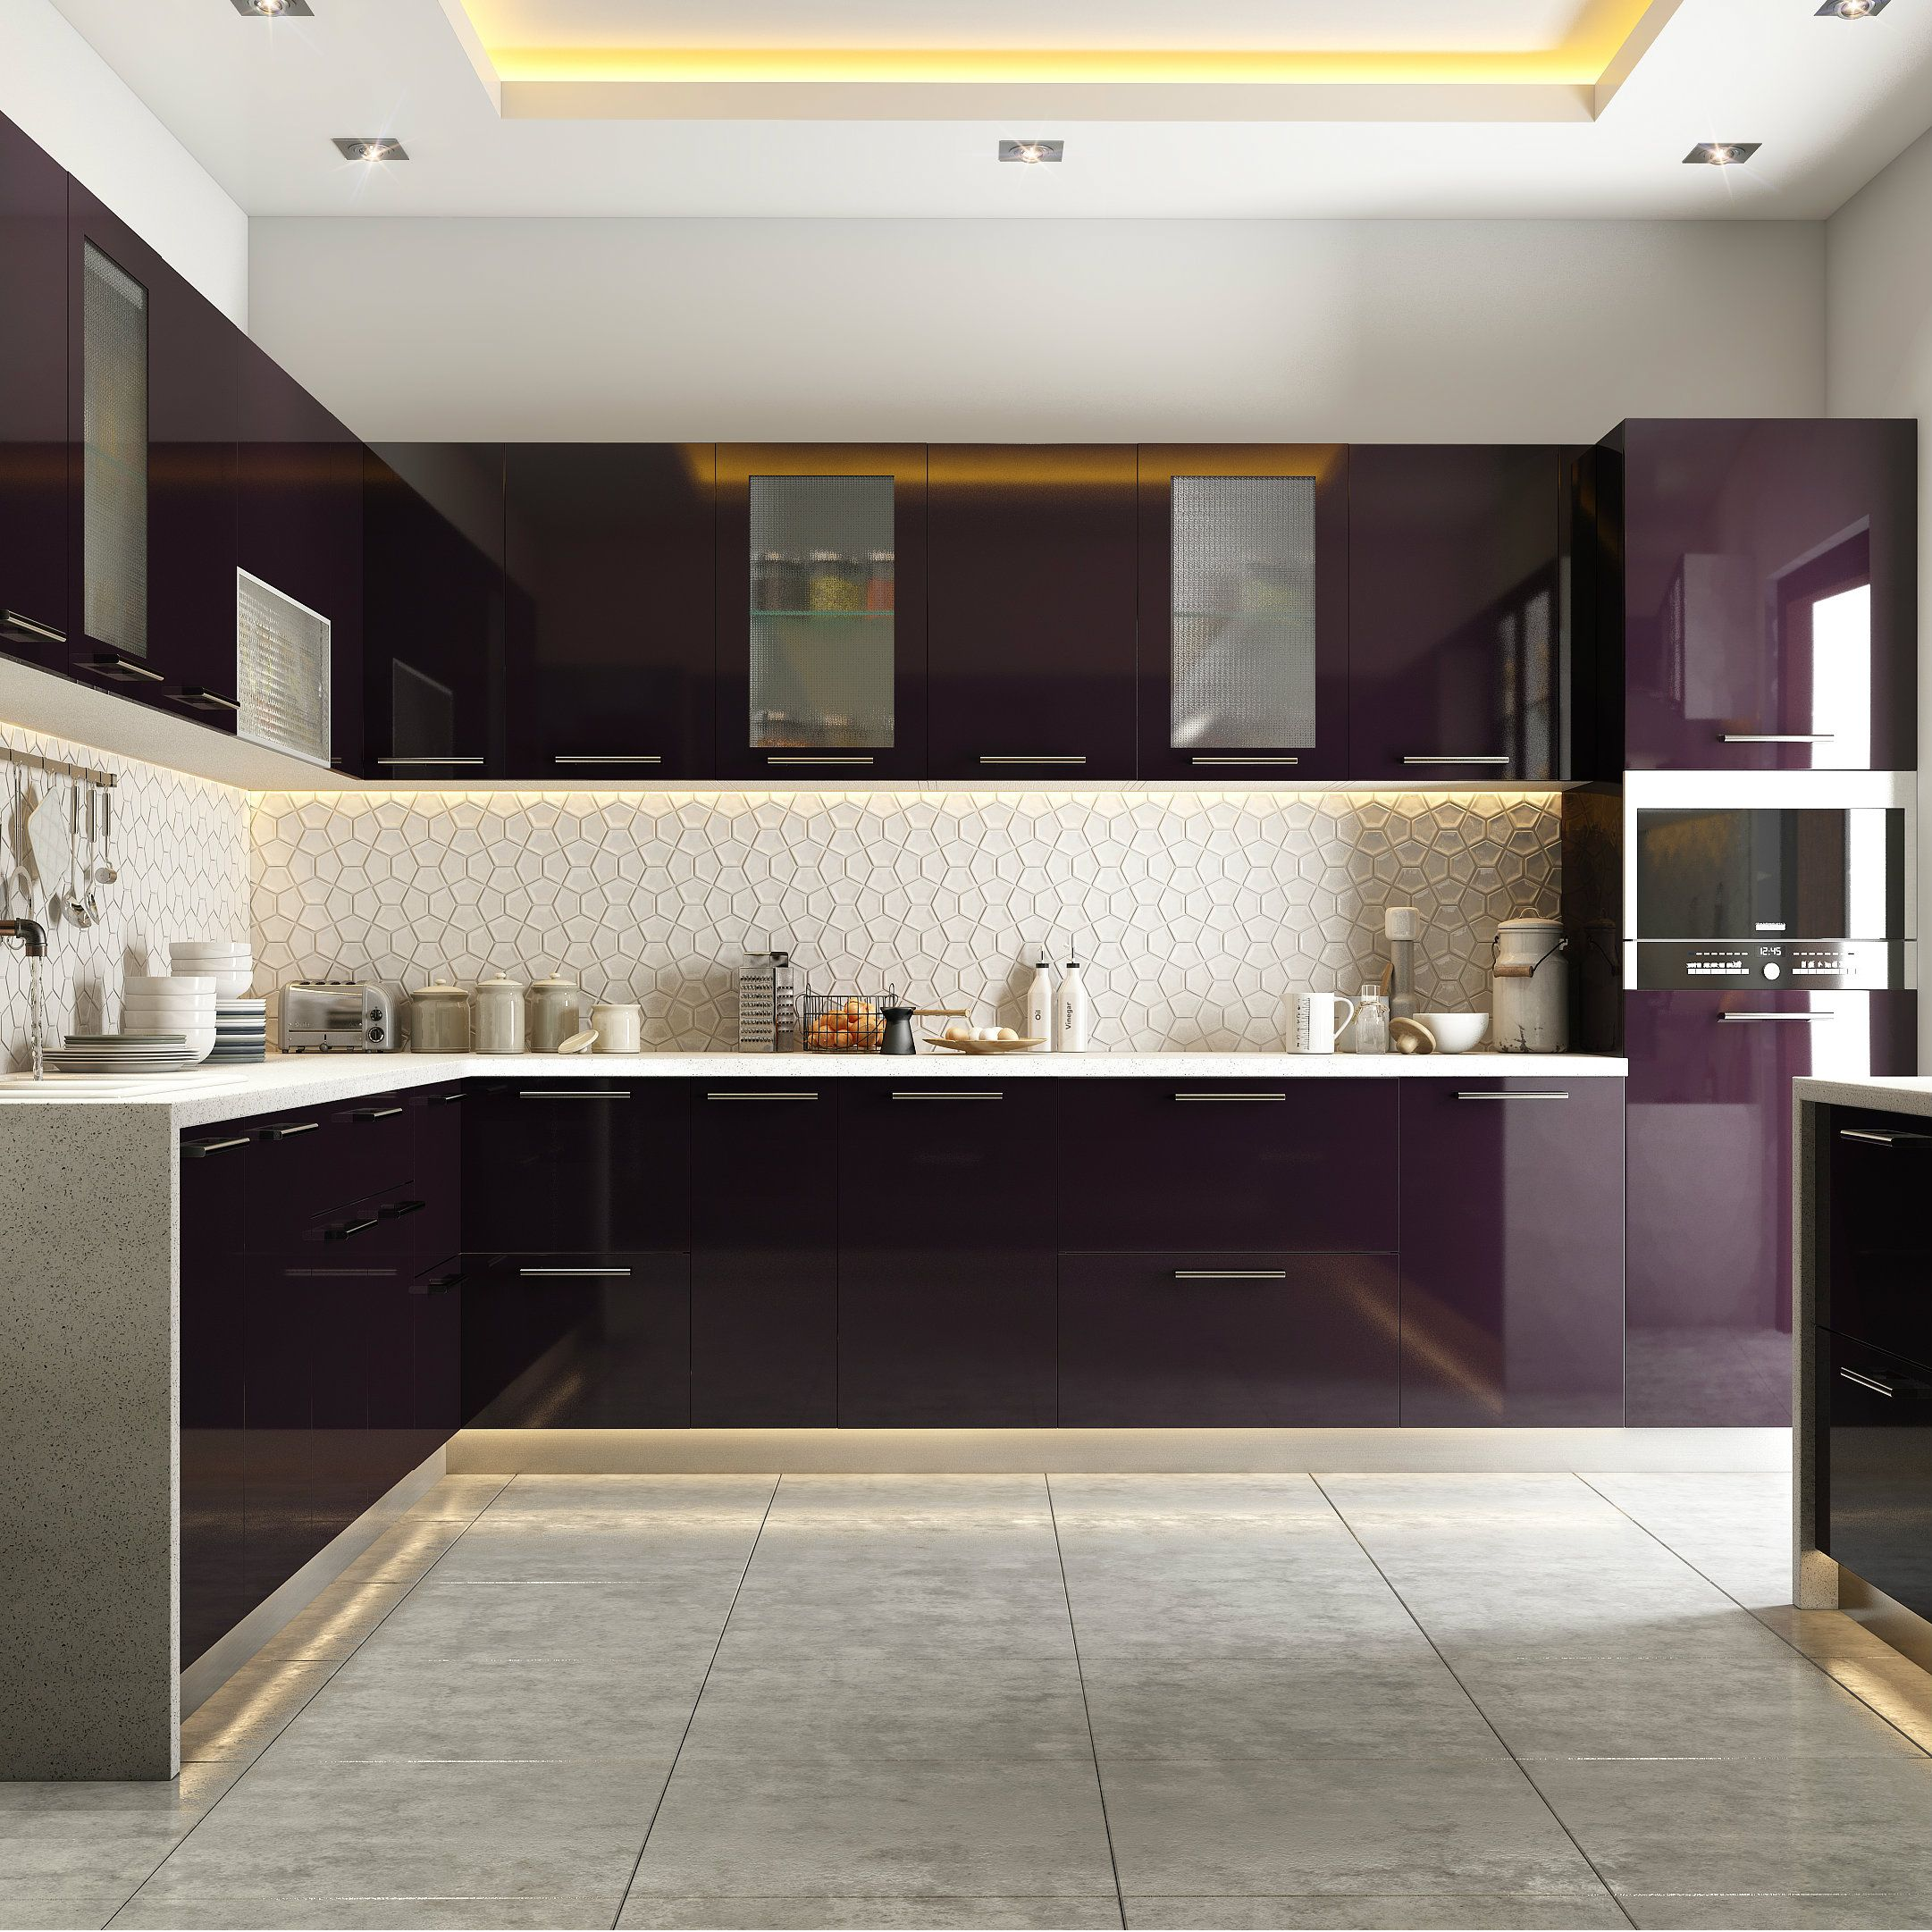 5 Reasons Why Modular Kitchen Designs Are The Latest Trend in Home Decor